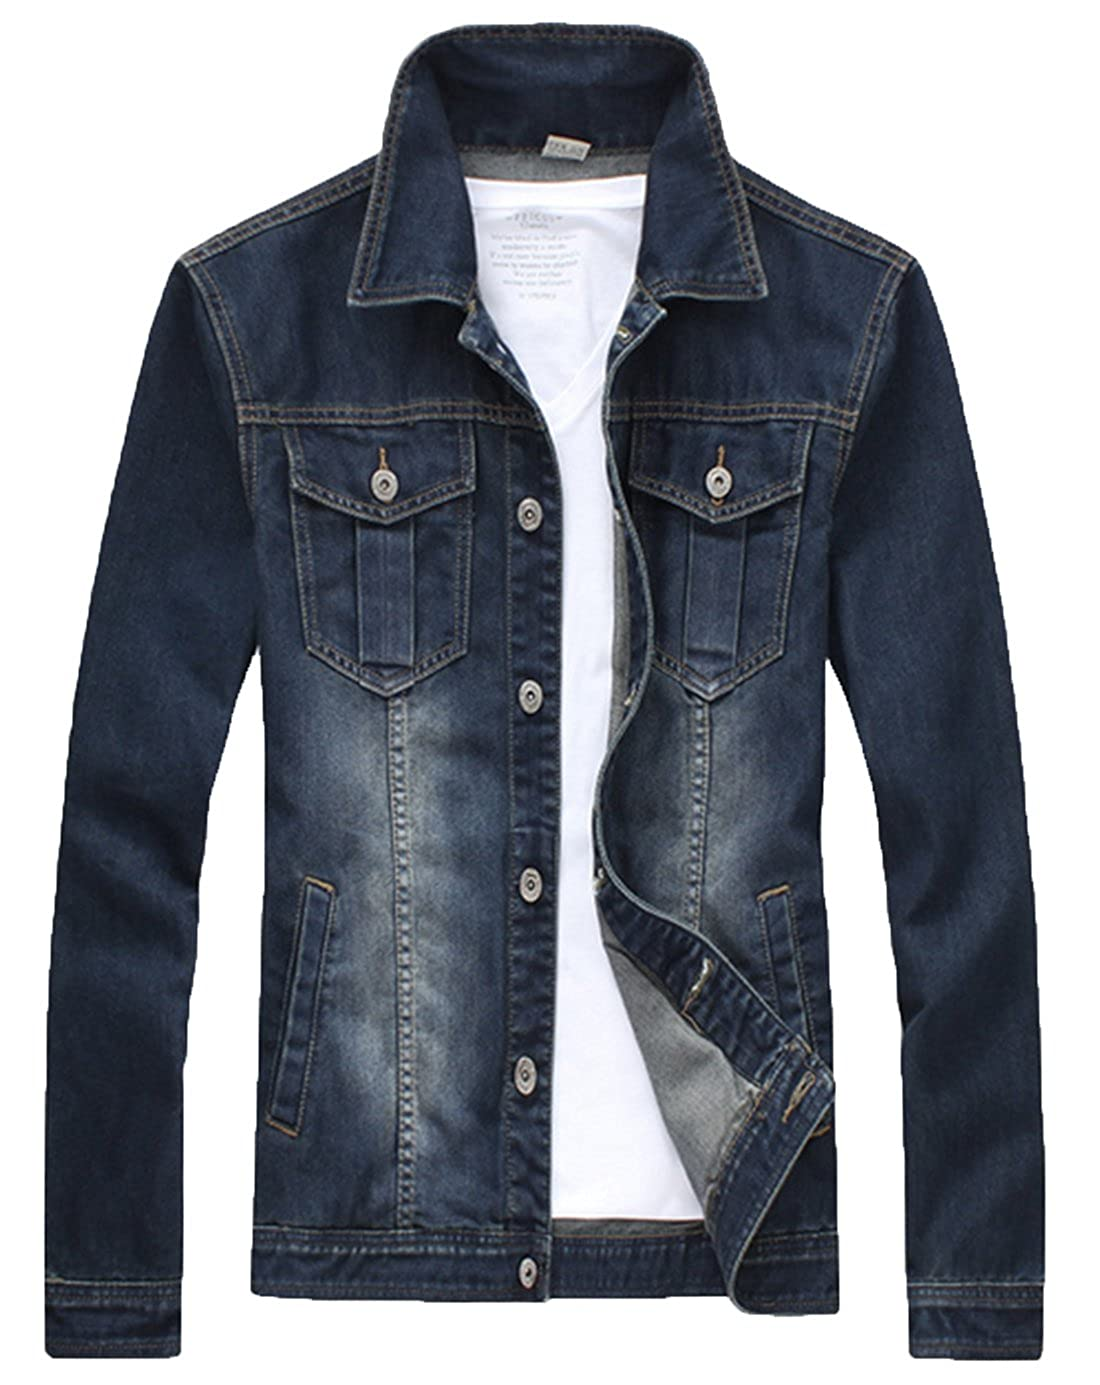 XueYin Mens Denim Jacket Slim Fit